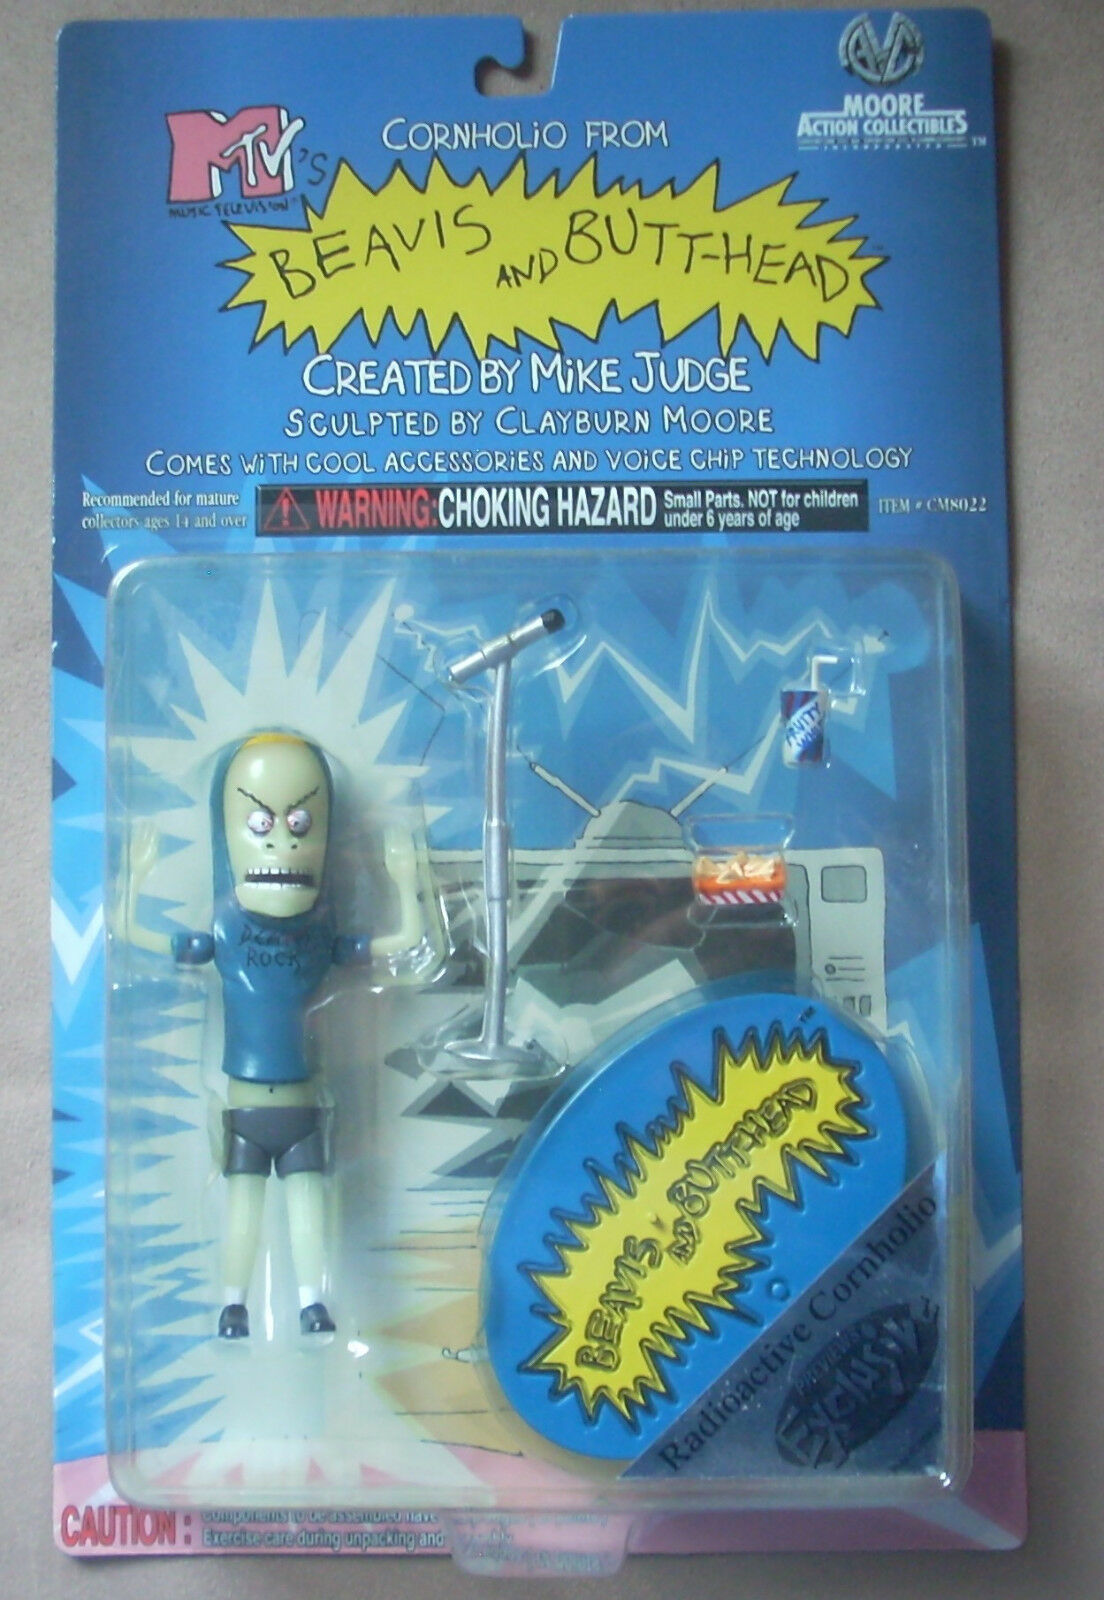 Beavis and Butt-head Radioactive Cornholio Preview Exclusive  CM8023